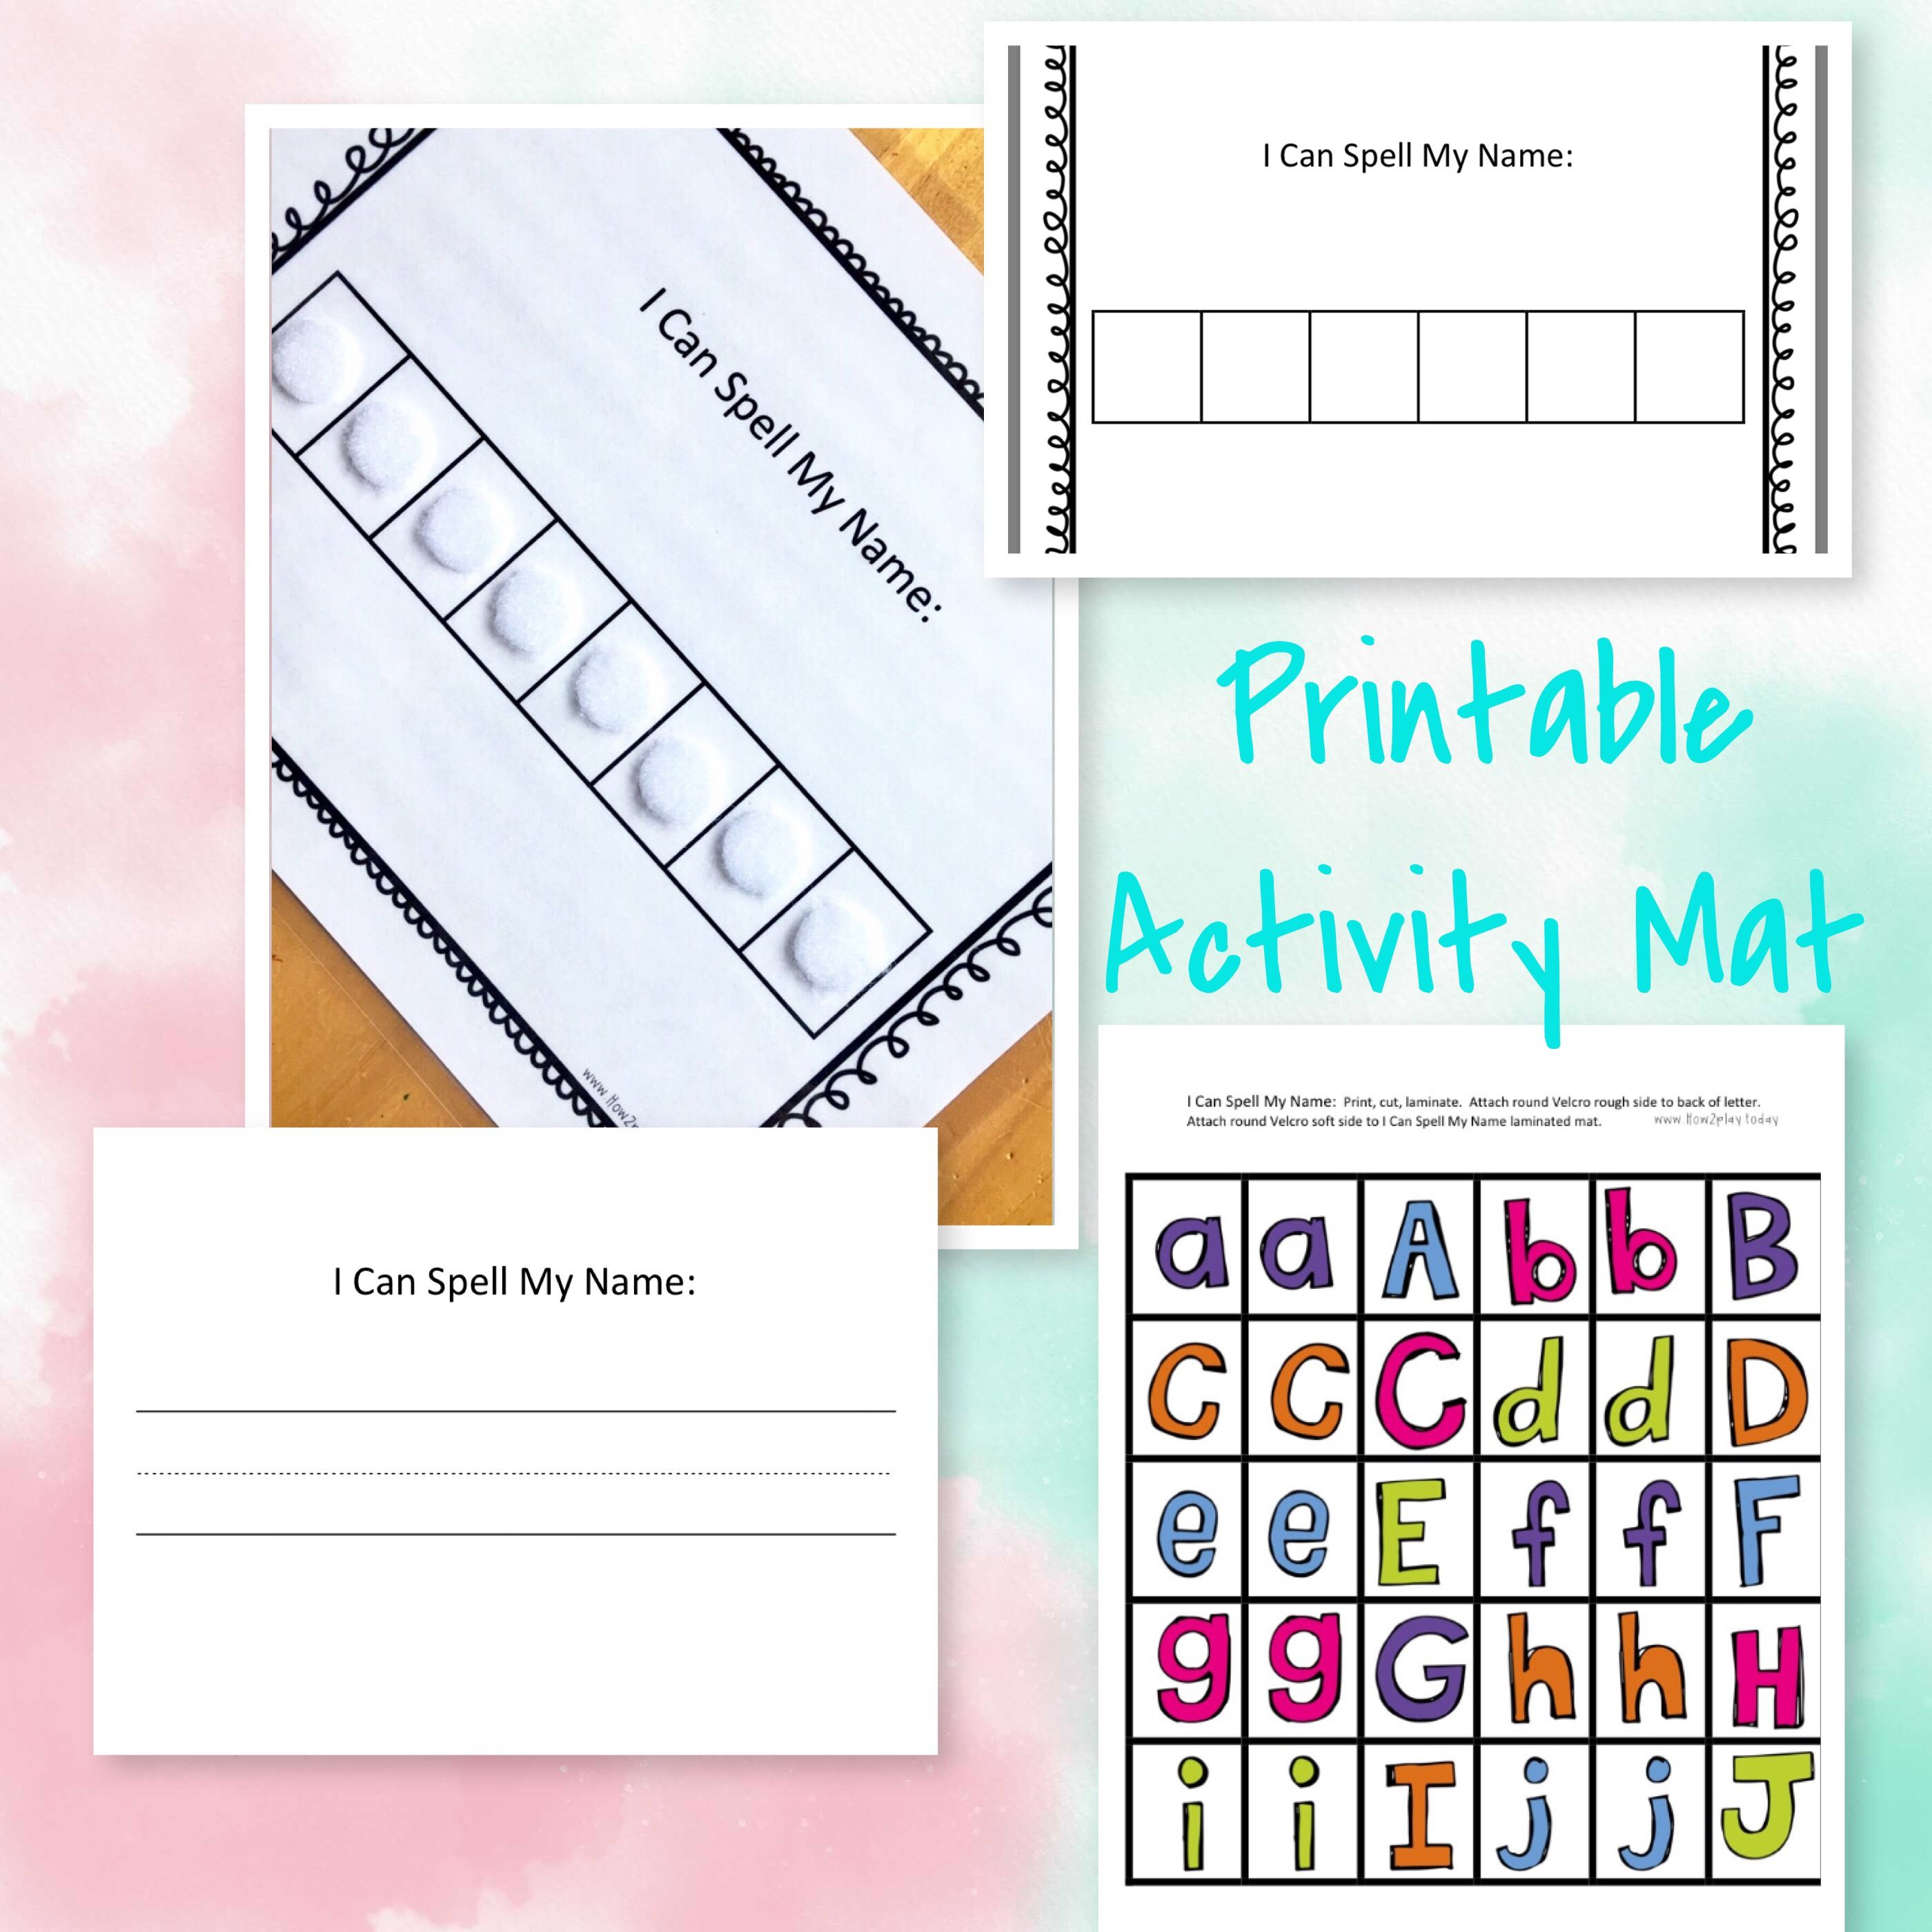 Laminate This I Can Spell My Name Mat And Your Children Can Have Endless Fun Use Dry Erase Or Wet Erase Markers Wet Erase Markers Names Printable Activities [ 2800 x 2800 Pixel ]